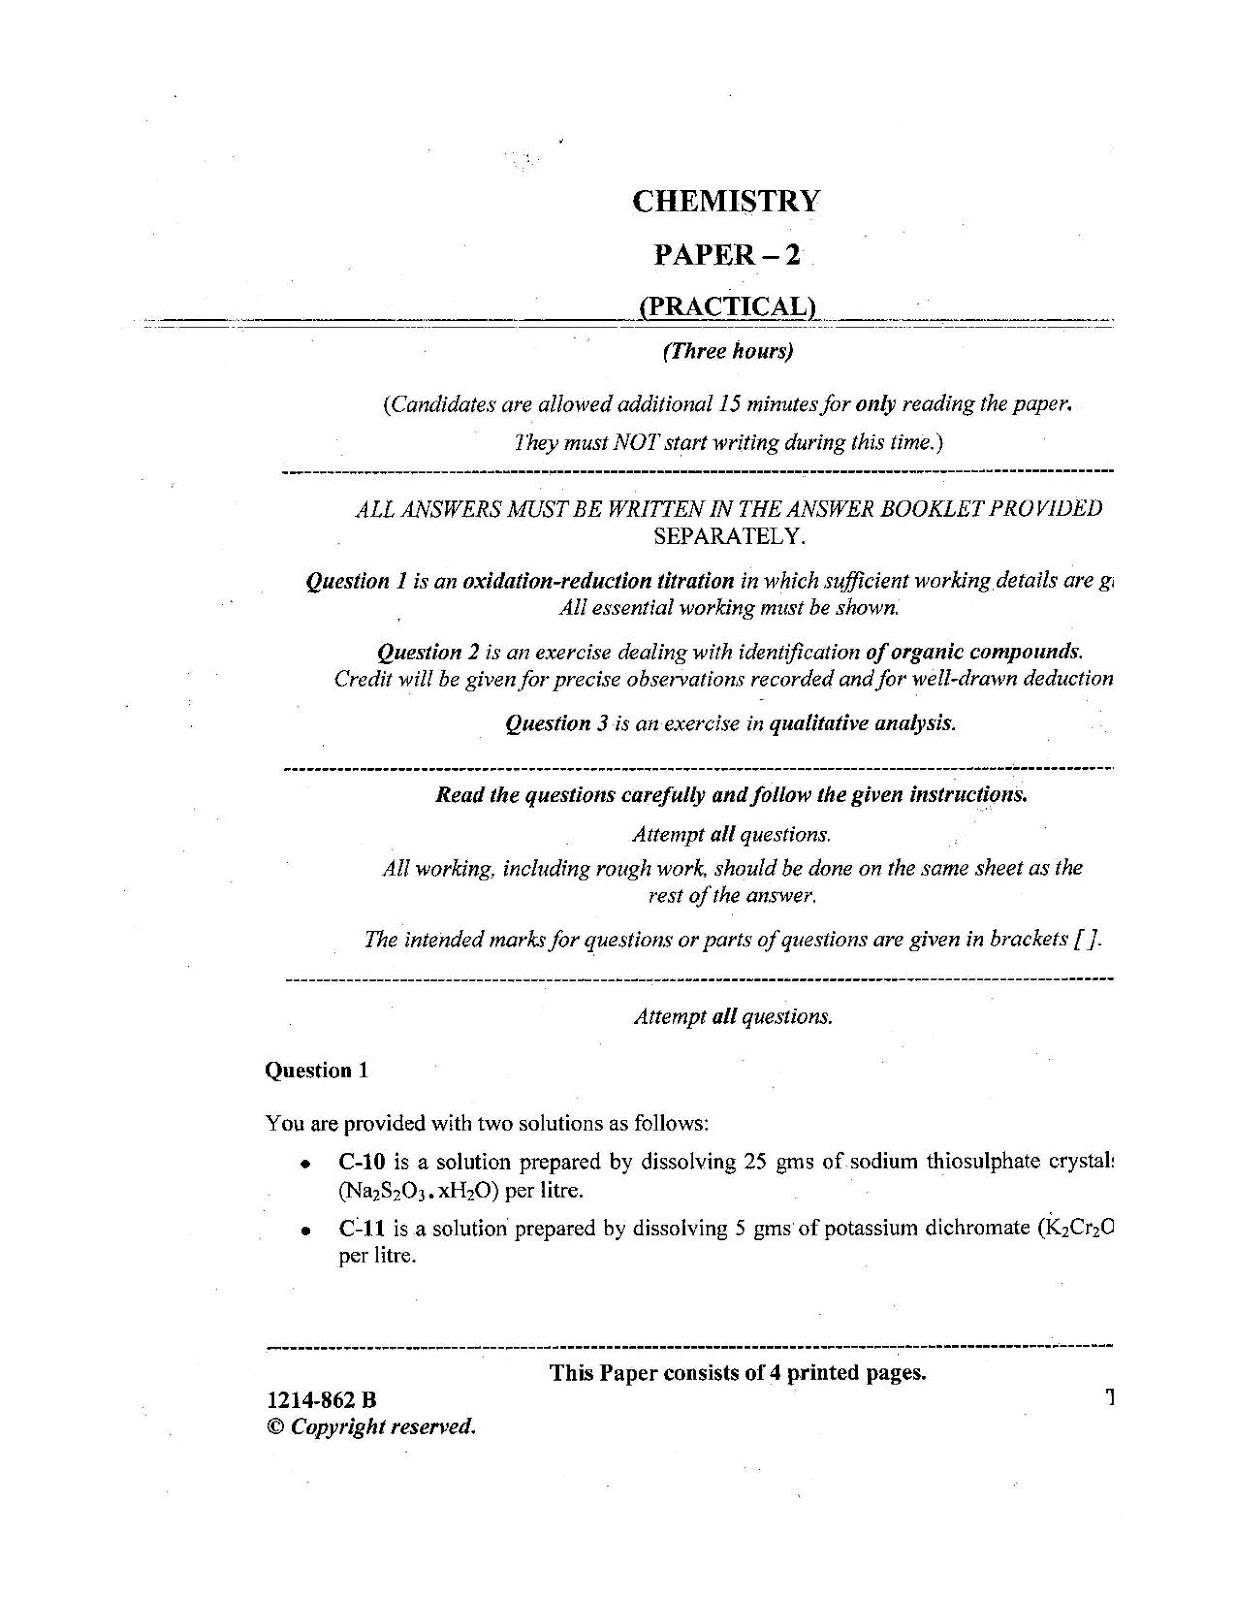 isc 2014 class 12th chemistry Practical question paper